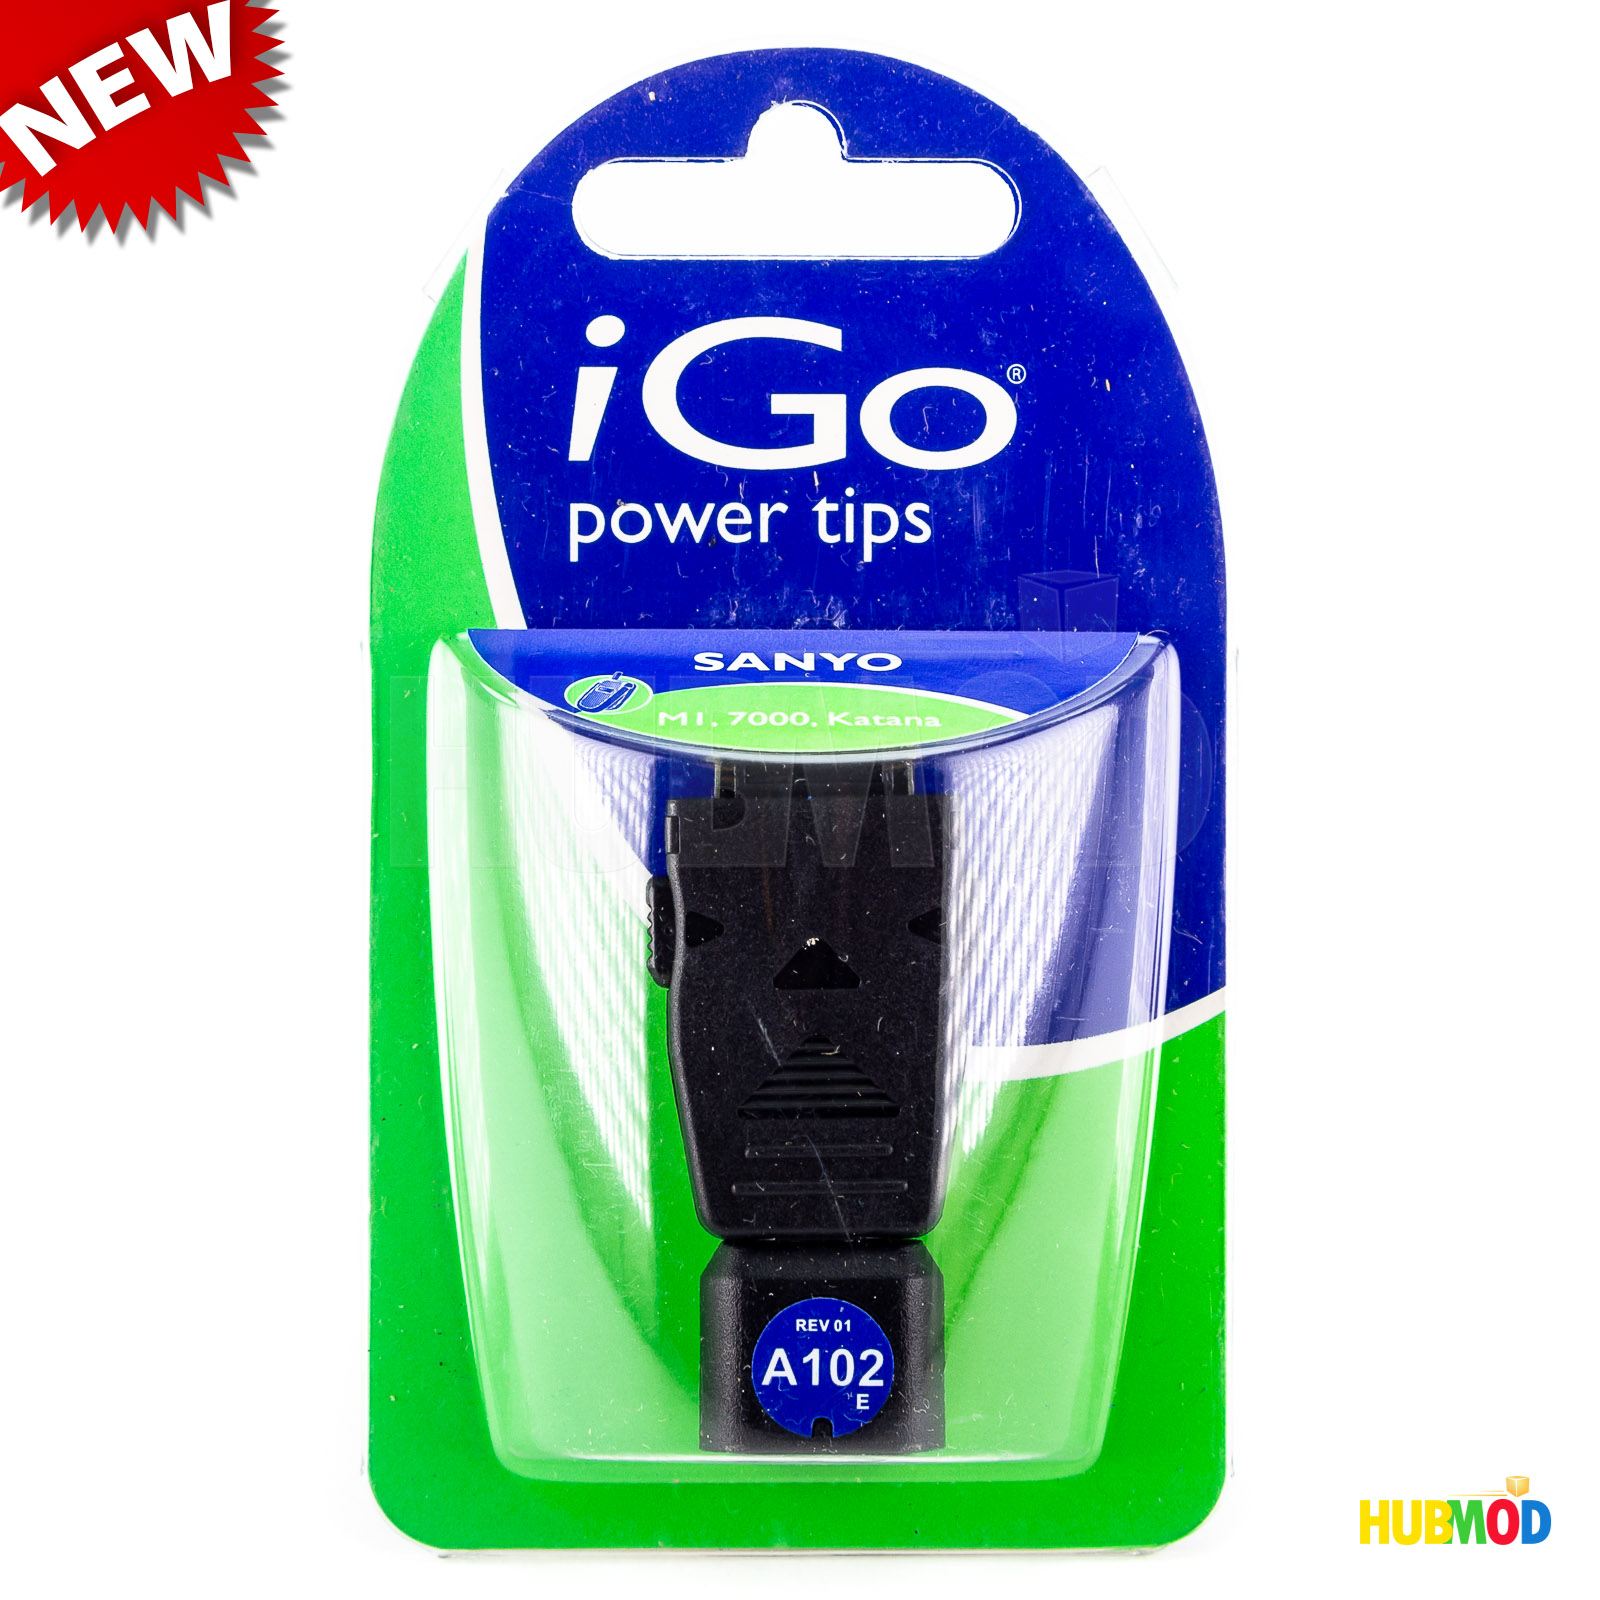 Details About Igo Tips A102 For Sanyo Scp 3100 3200 7000 7200 7300 8100 8200 8400 8500